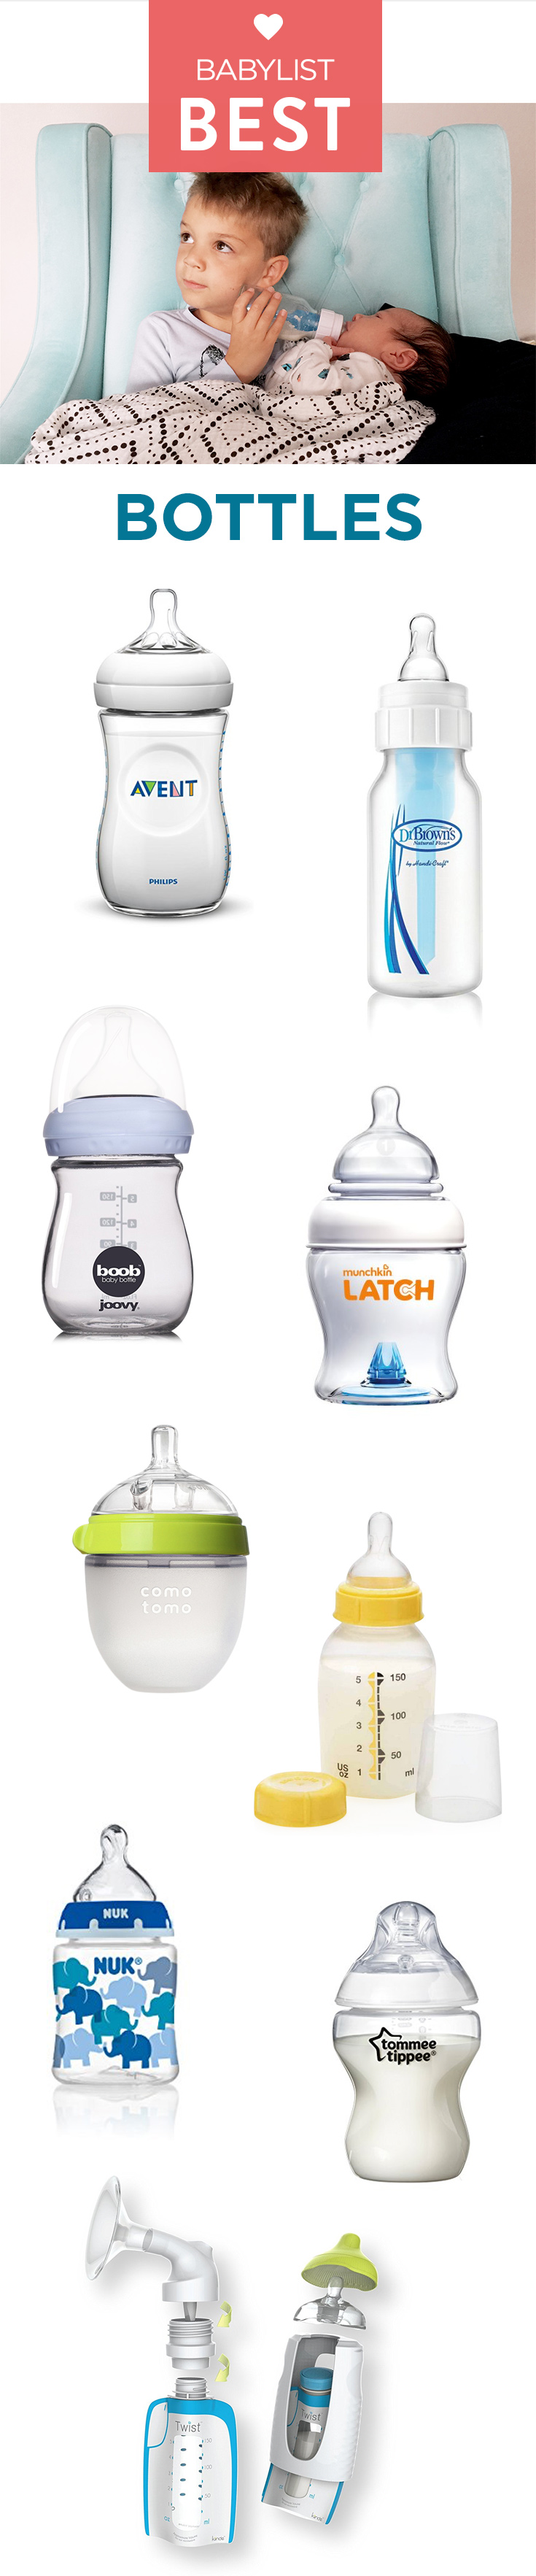 Baby bottle: how to make the right choice 73